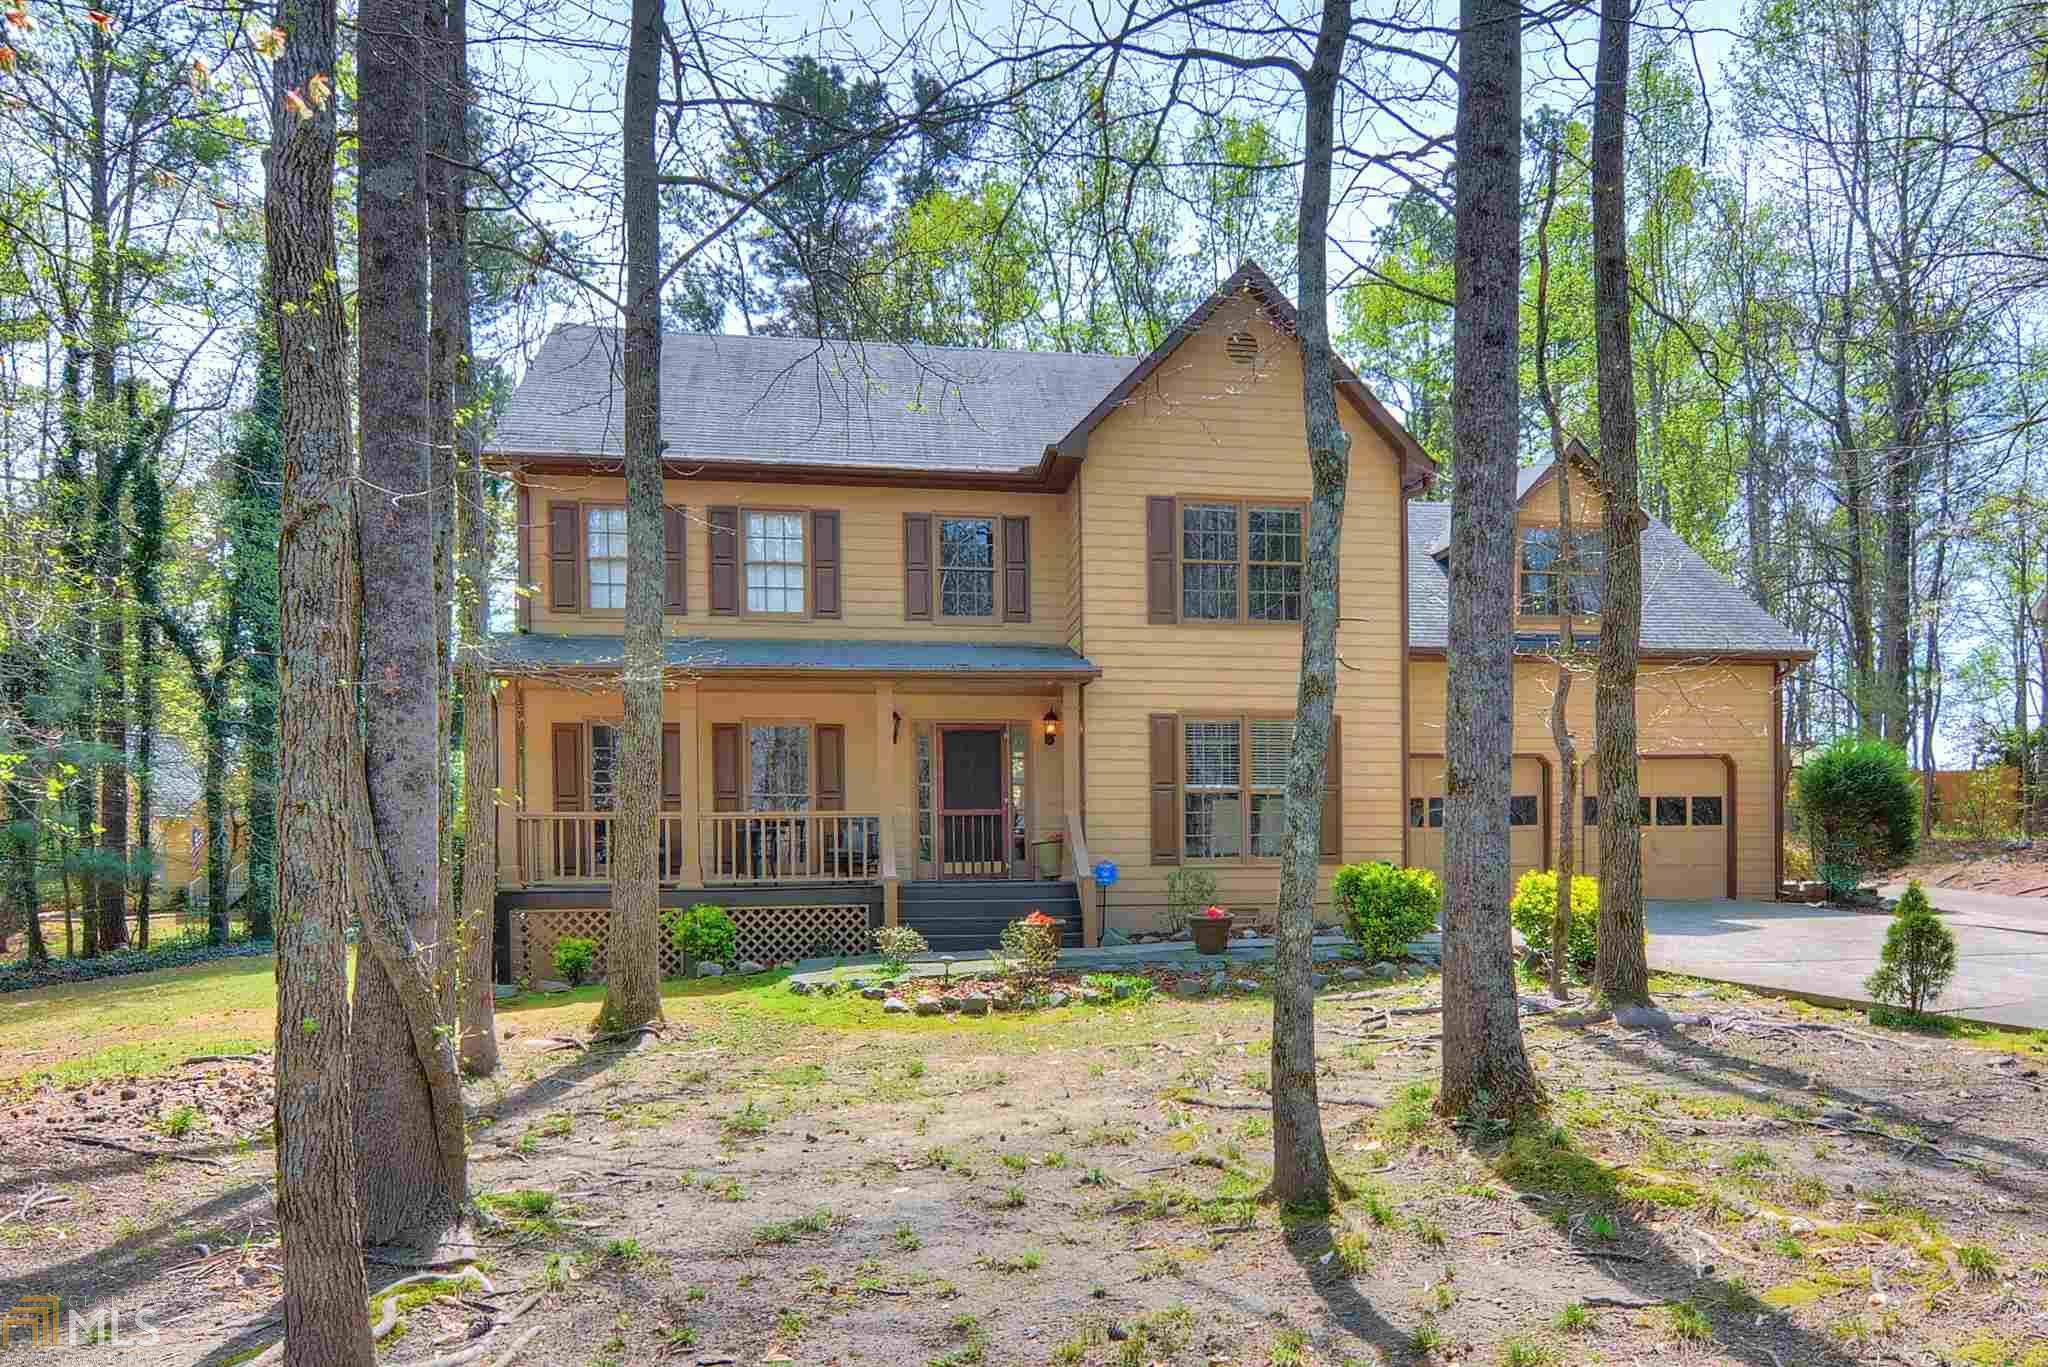 400 Millers Ct Alpharetta Ga Mls 8160550 Kenneth G Lee 678